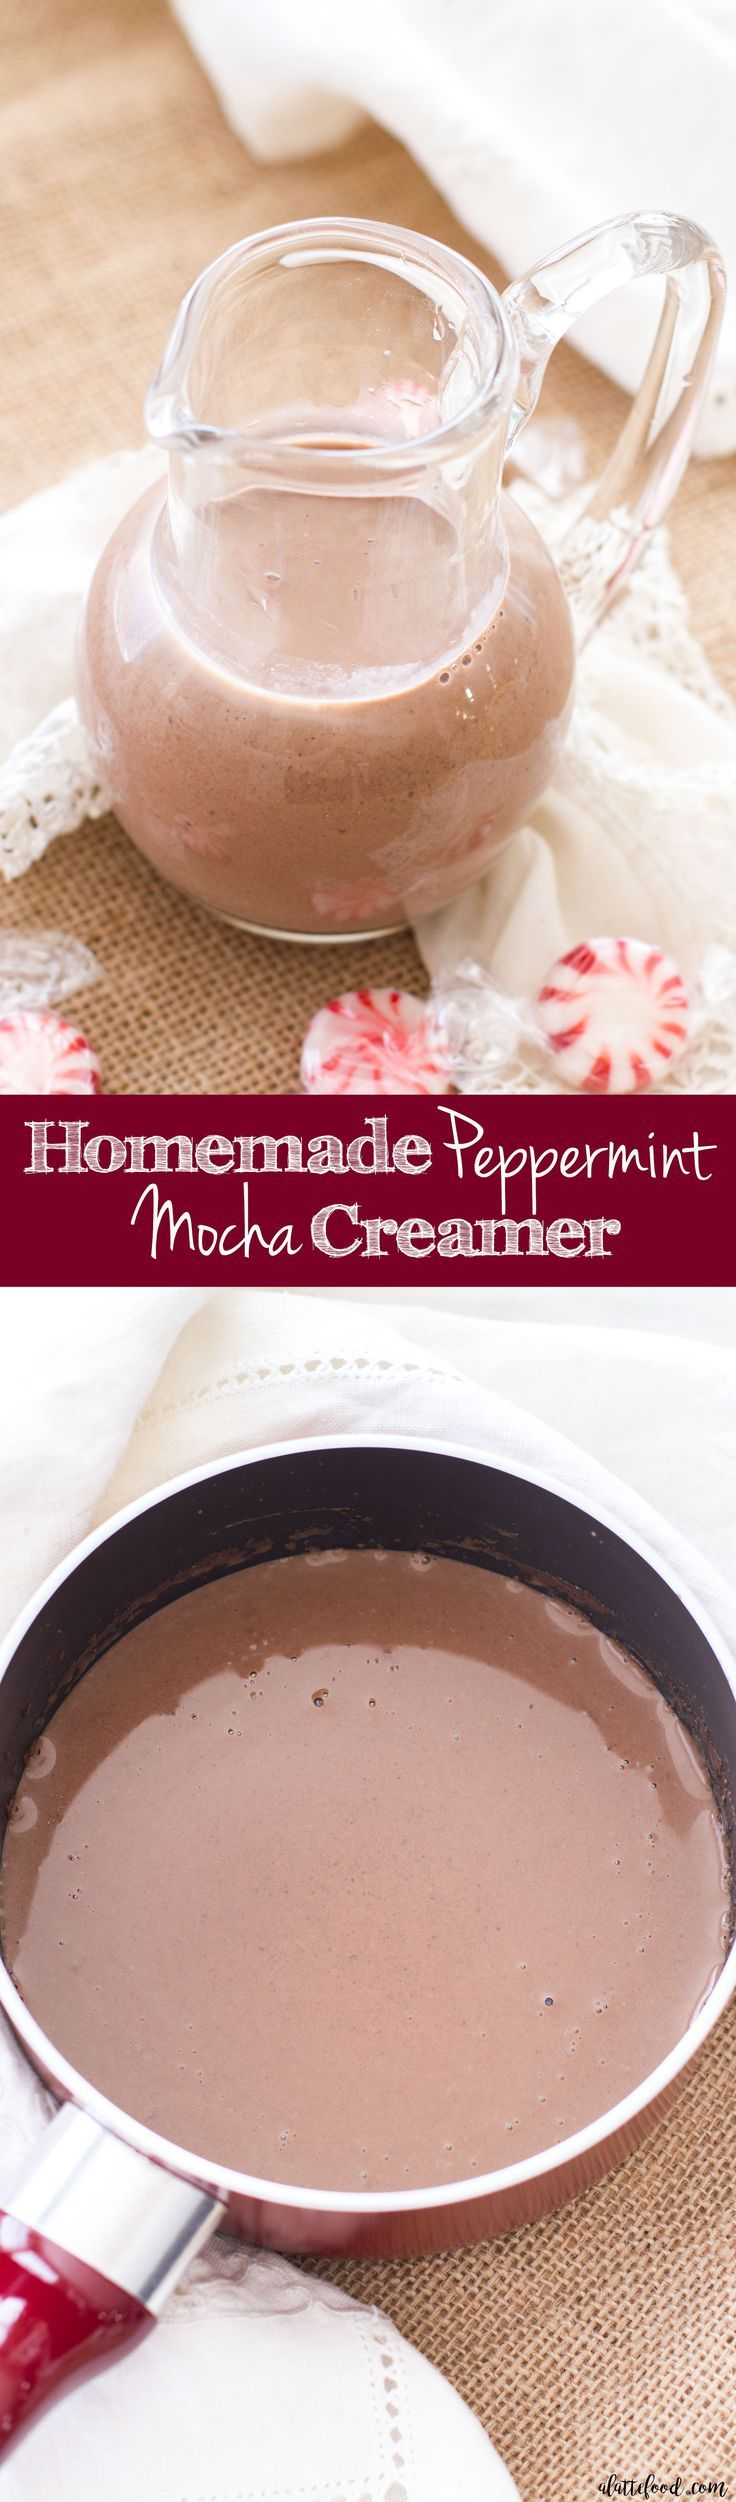 This easy homemade peppermint mocha creamer recipe is made